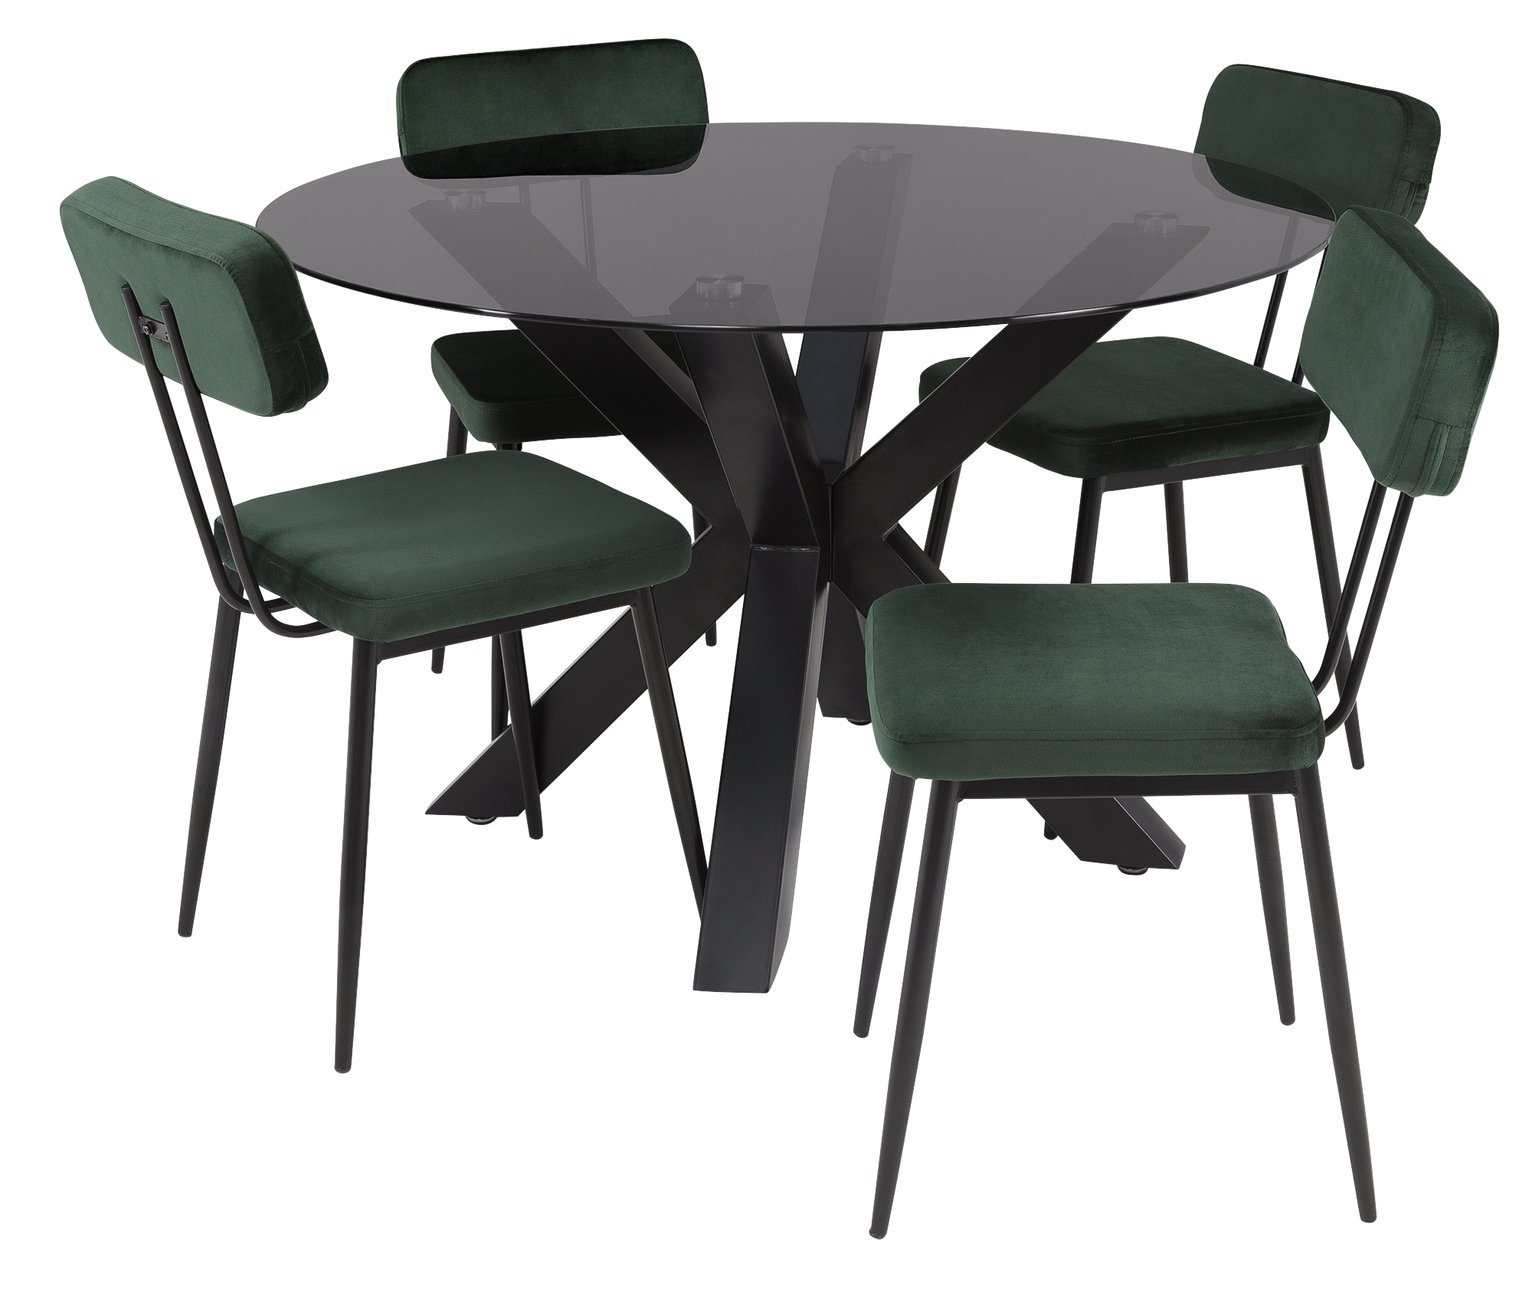 Serene 160cm Smoked Glass Table With 4 Chairs Cream